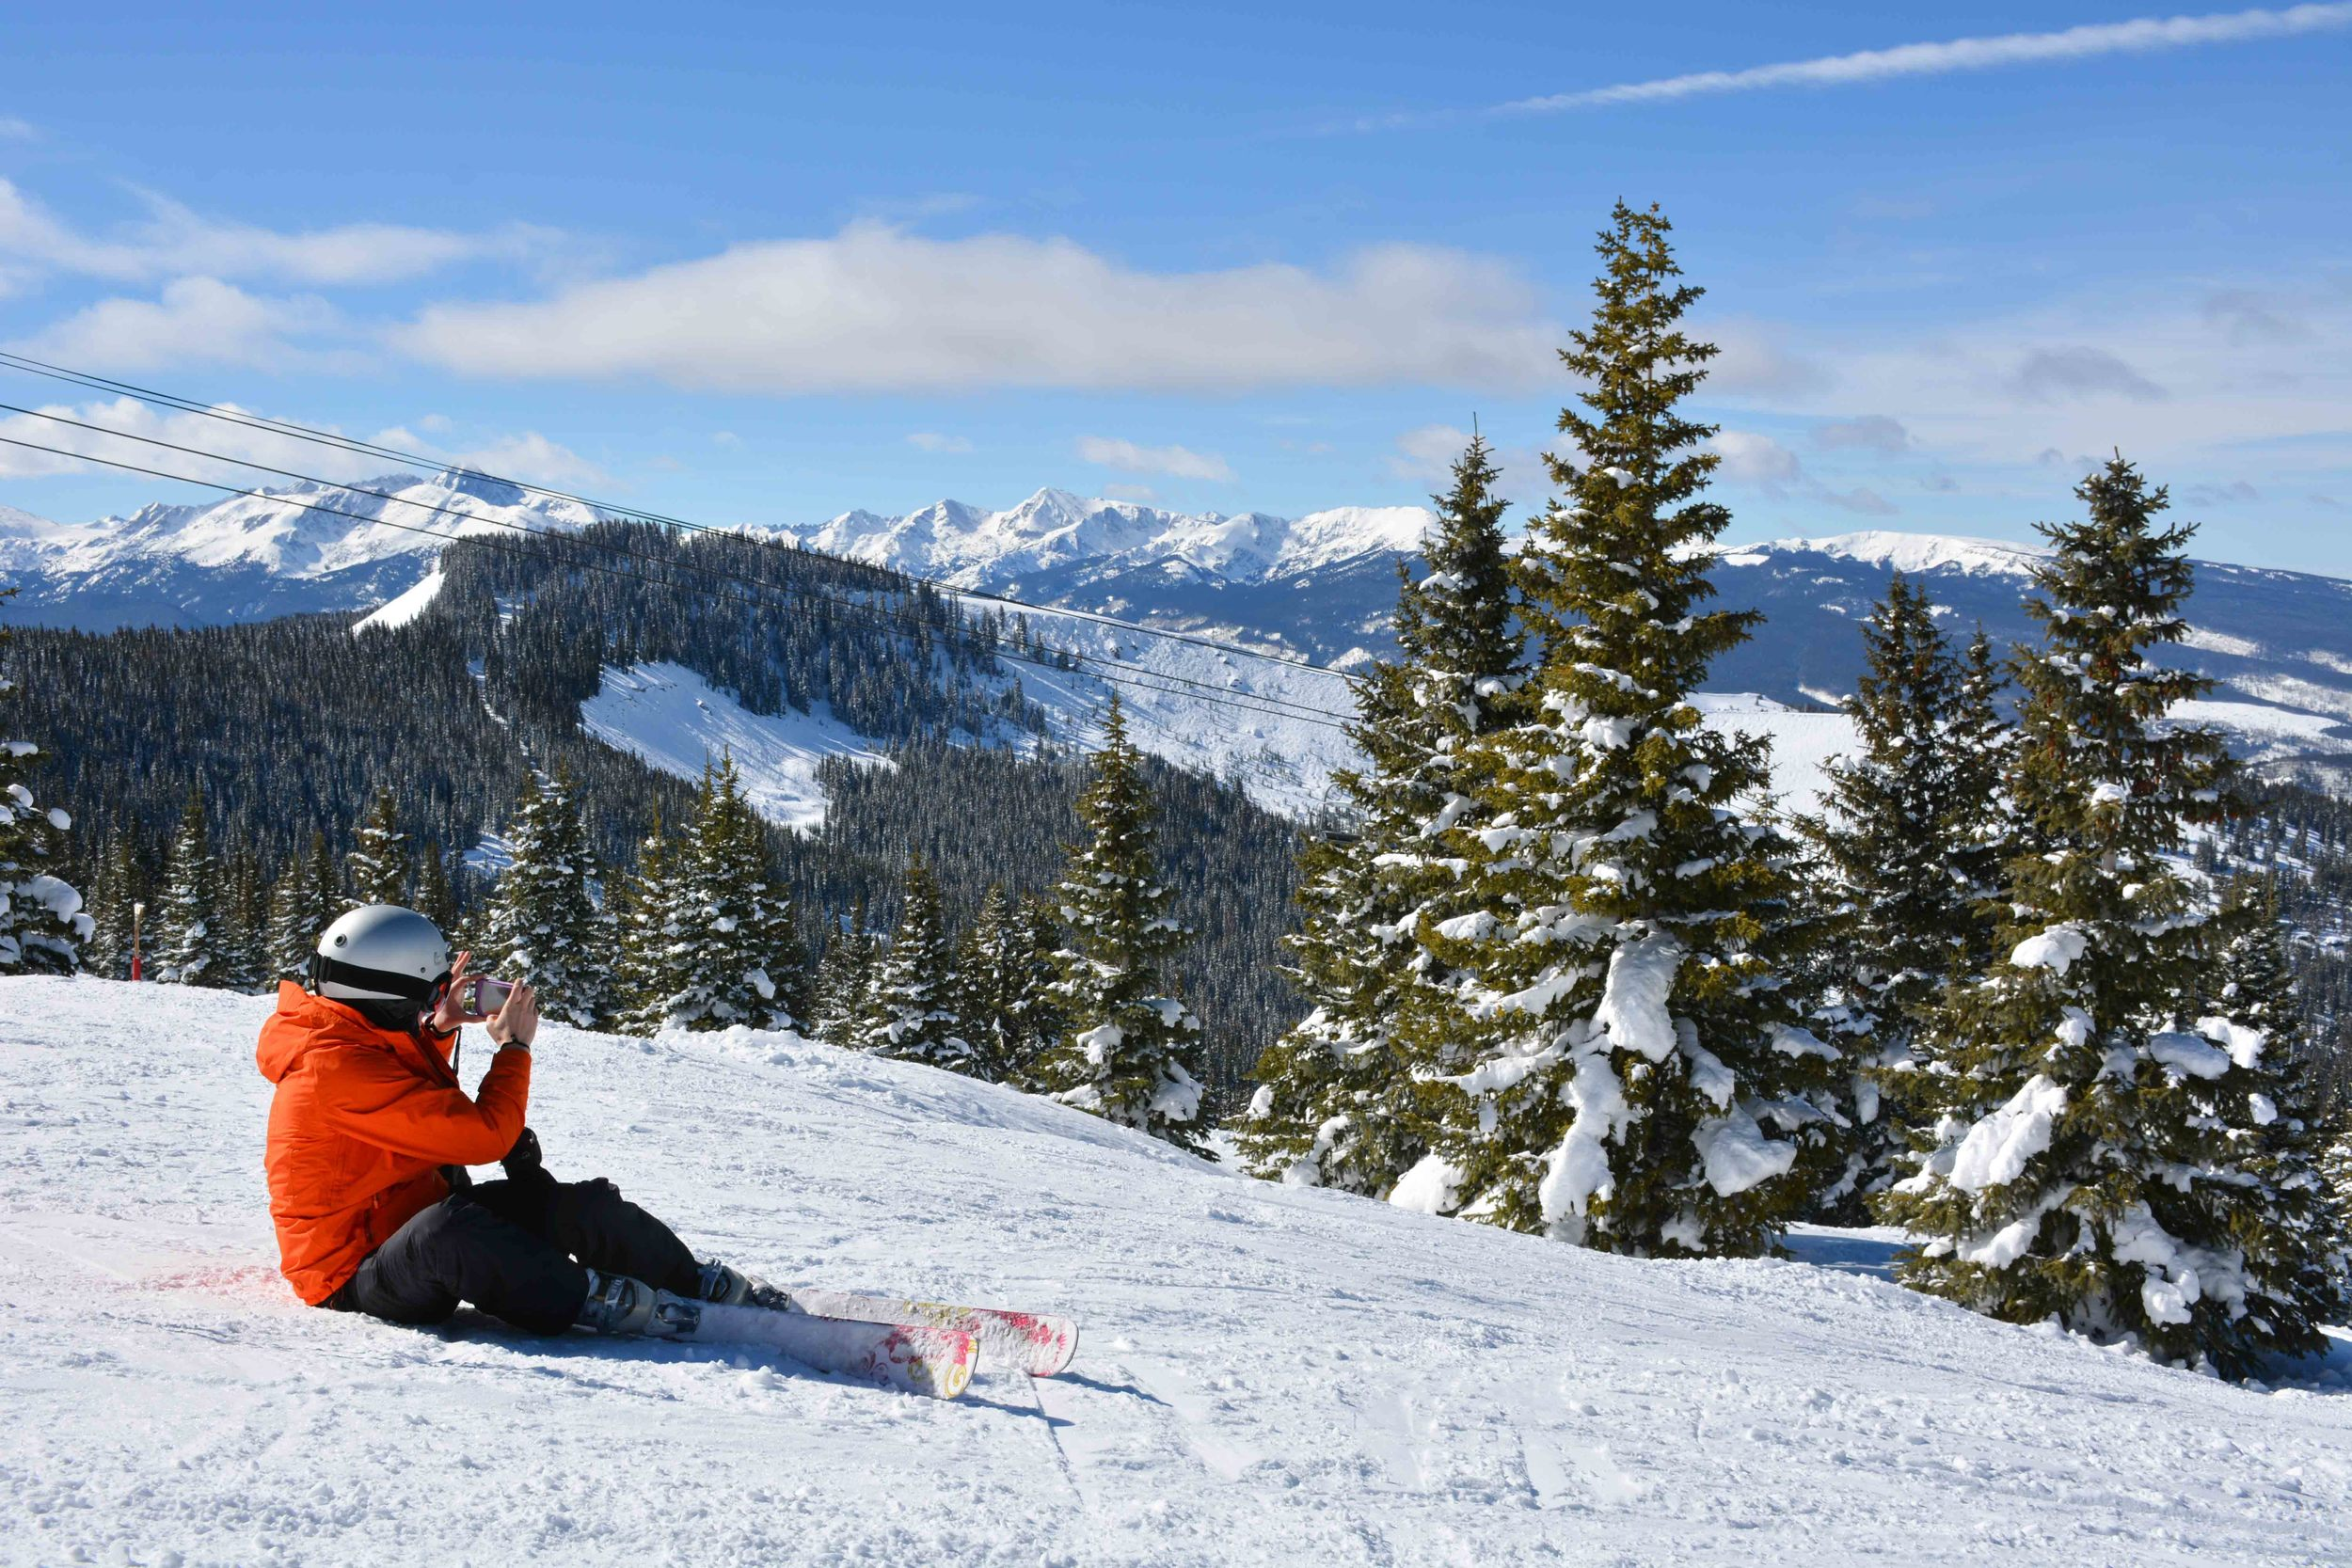 Taking in the view in Blue Sky Basin